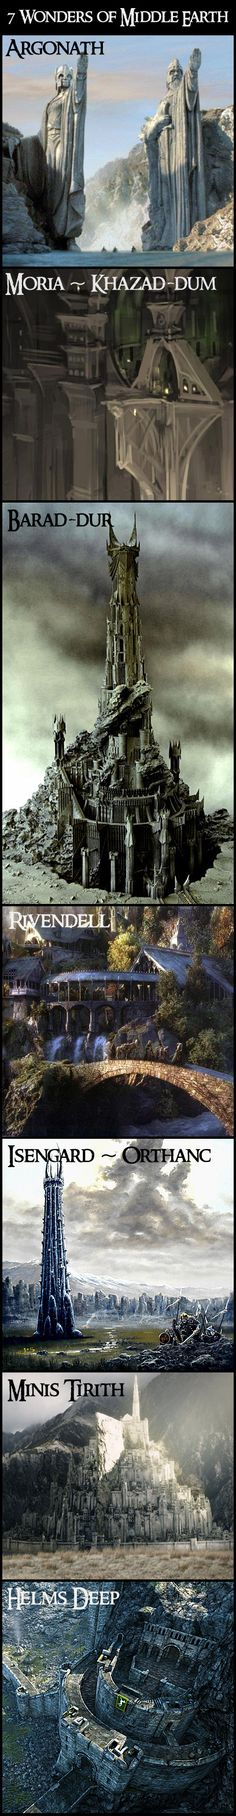 Seven Wonders of Middle Earth